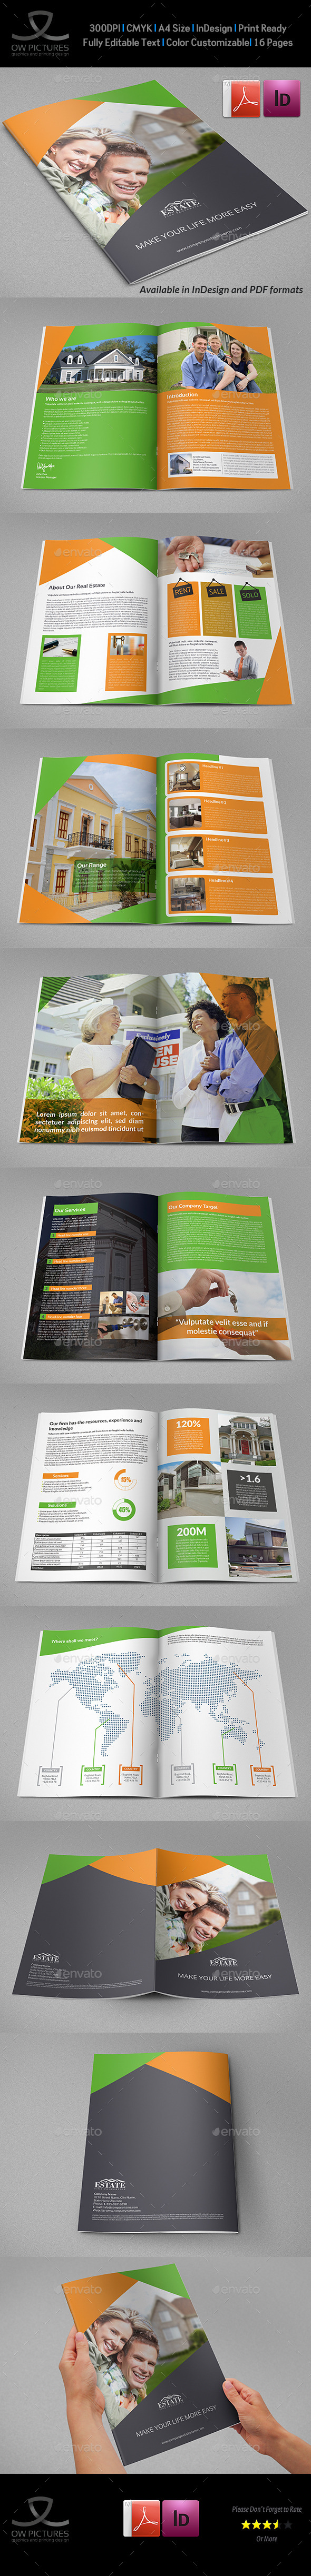 Real Estate Brochure Template - 16 Pages - Brochures Print Templates